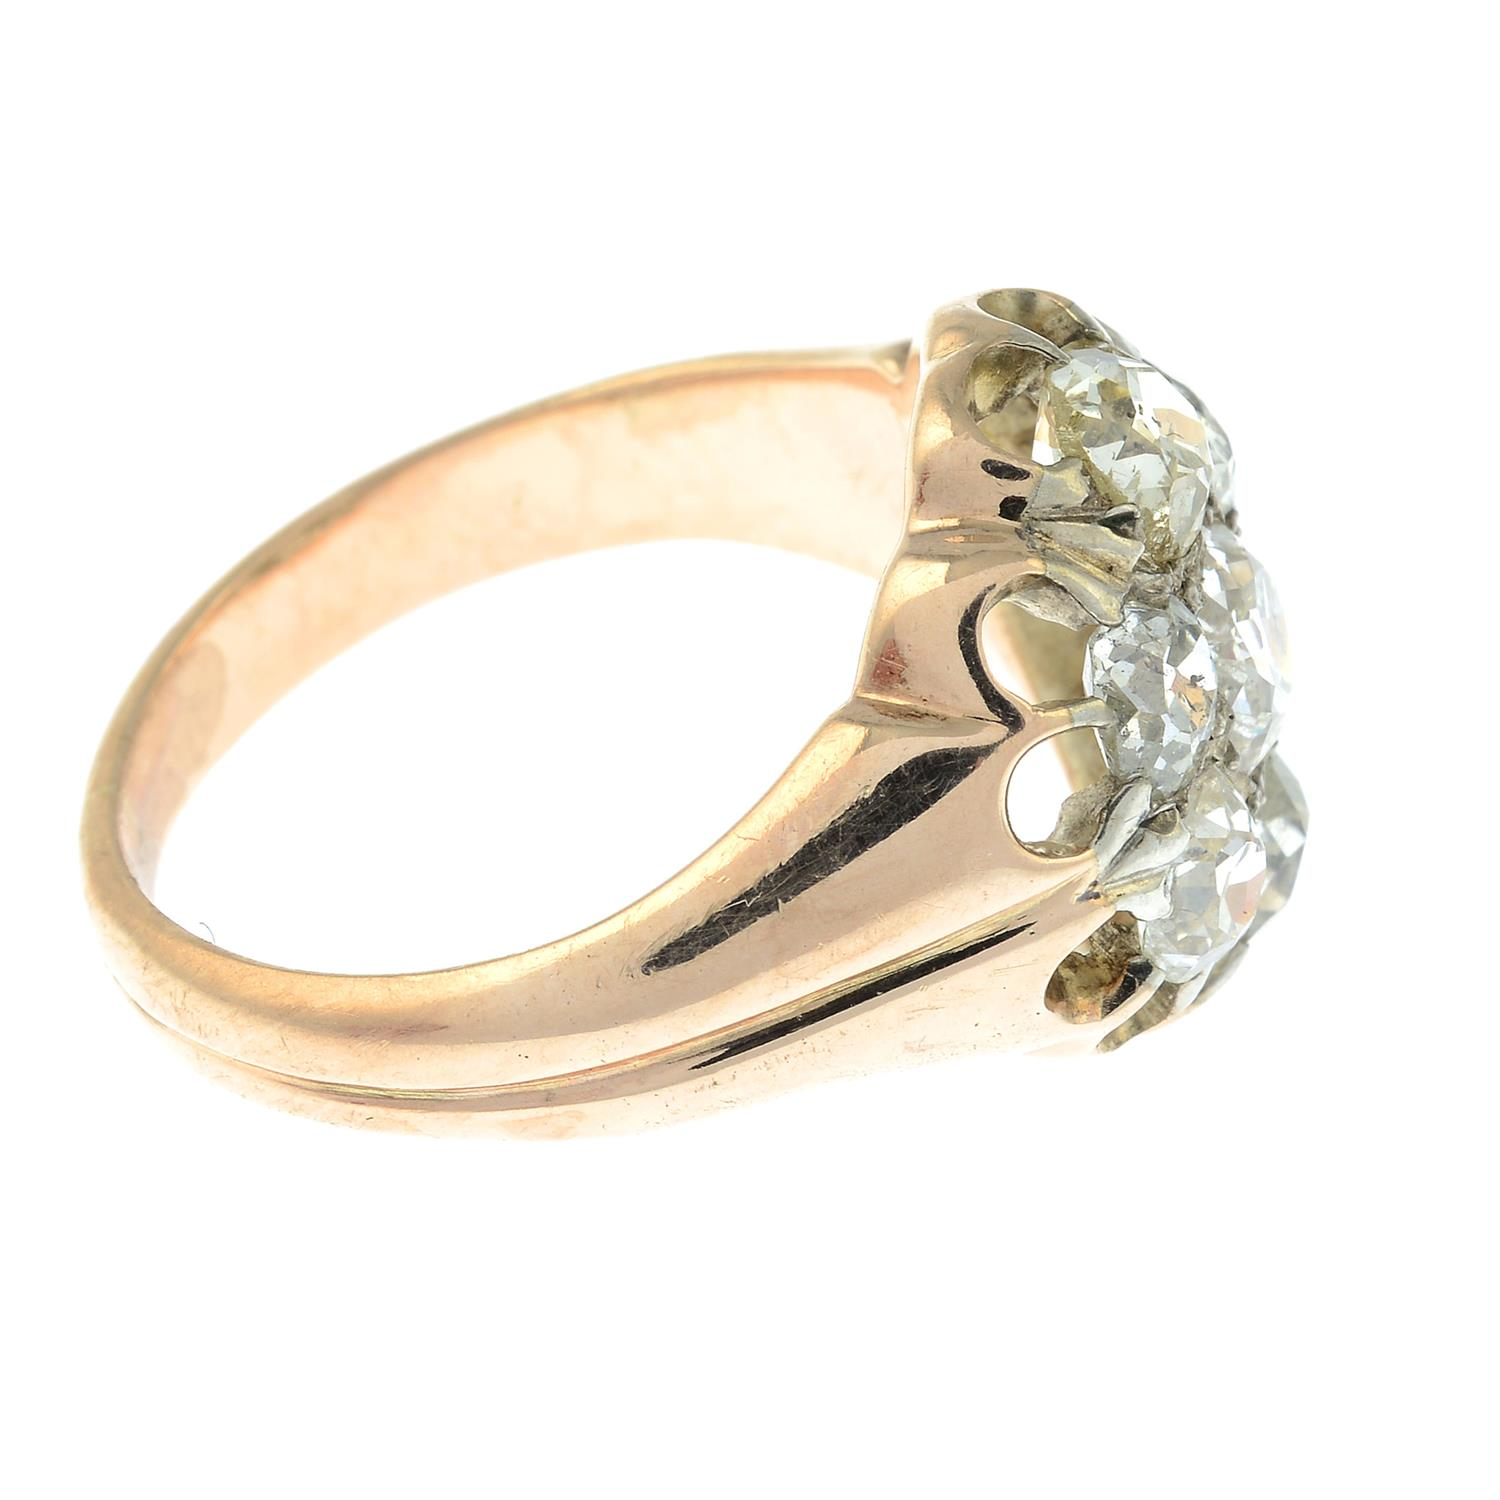 An early 20th century 9ct gold old-cut diamond cluster ring. - Image 4 of 6